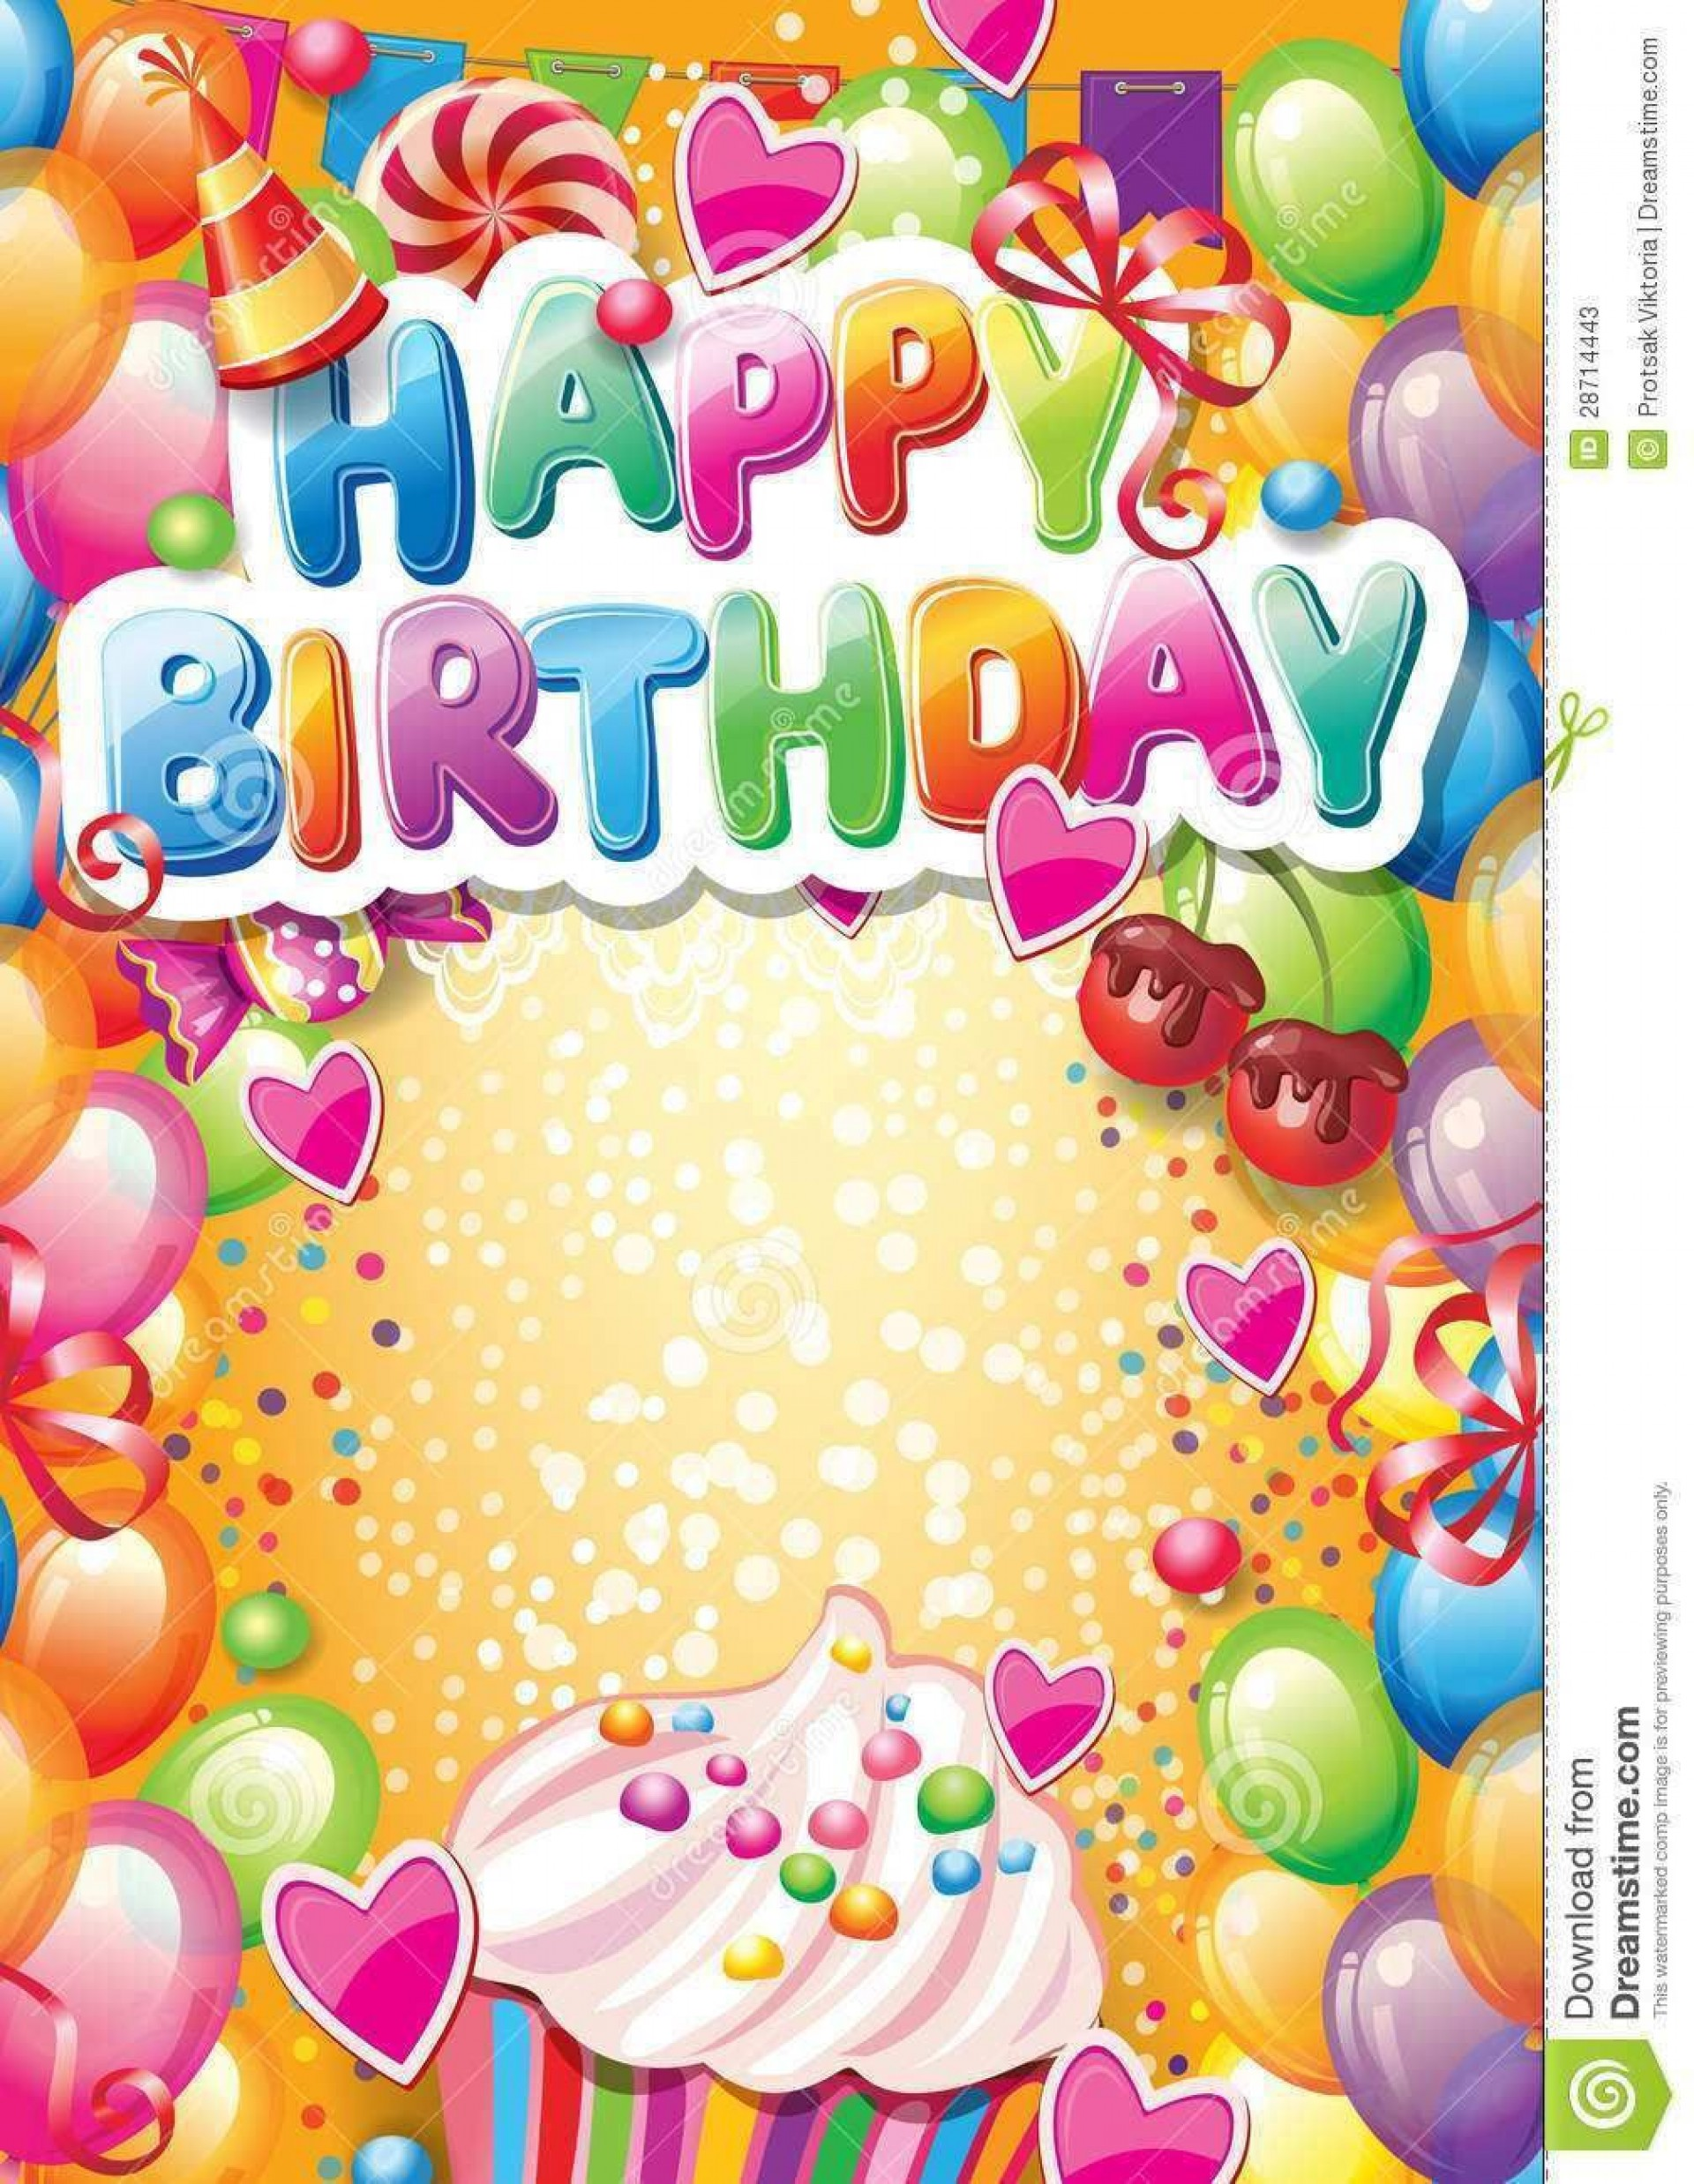 002 Frightening Birthday Card Template Free Image  Invitation Photoshop Download Word1920